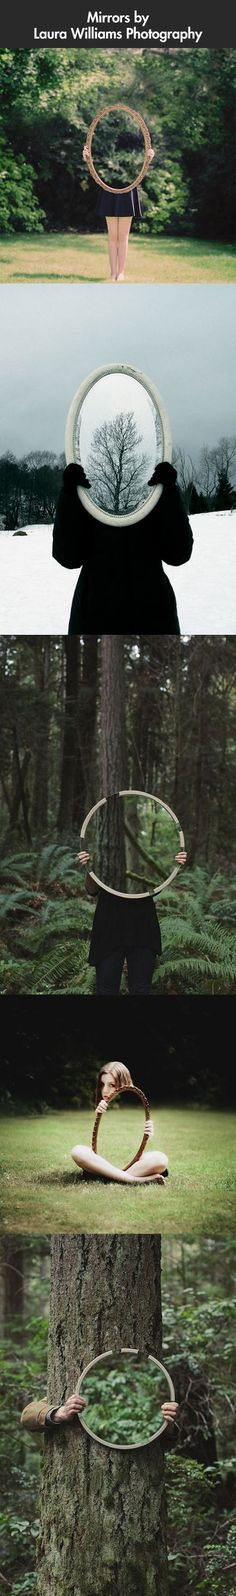 Playing with mirrors // funny pictures - funny photos - funny images - funny pics - funny quotes - Mirror Photography, Reflection Photography, Photography Projects, Creative Photography, Amazing Photography, Photography Tips, Portrait Photography, Illusion Photography, Outdoor Photography